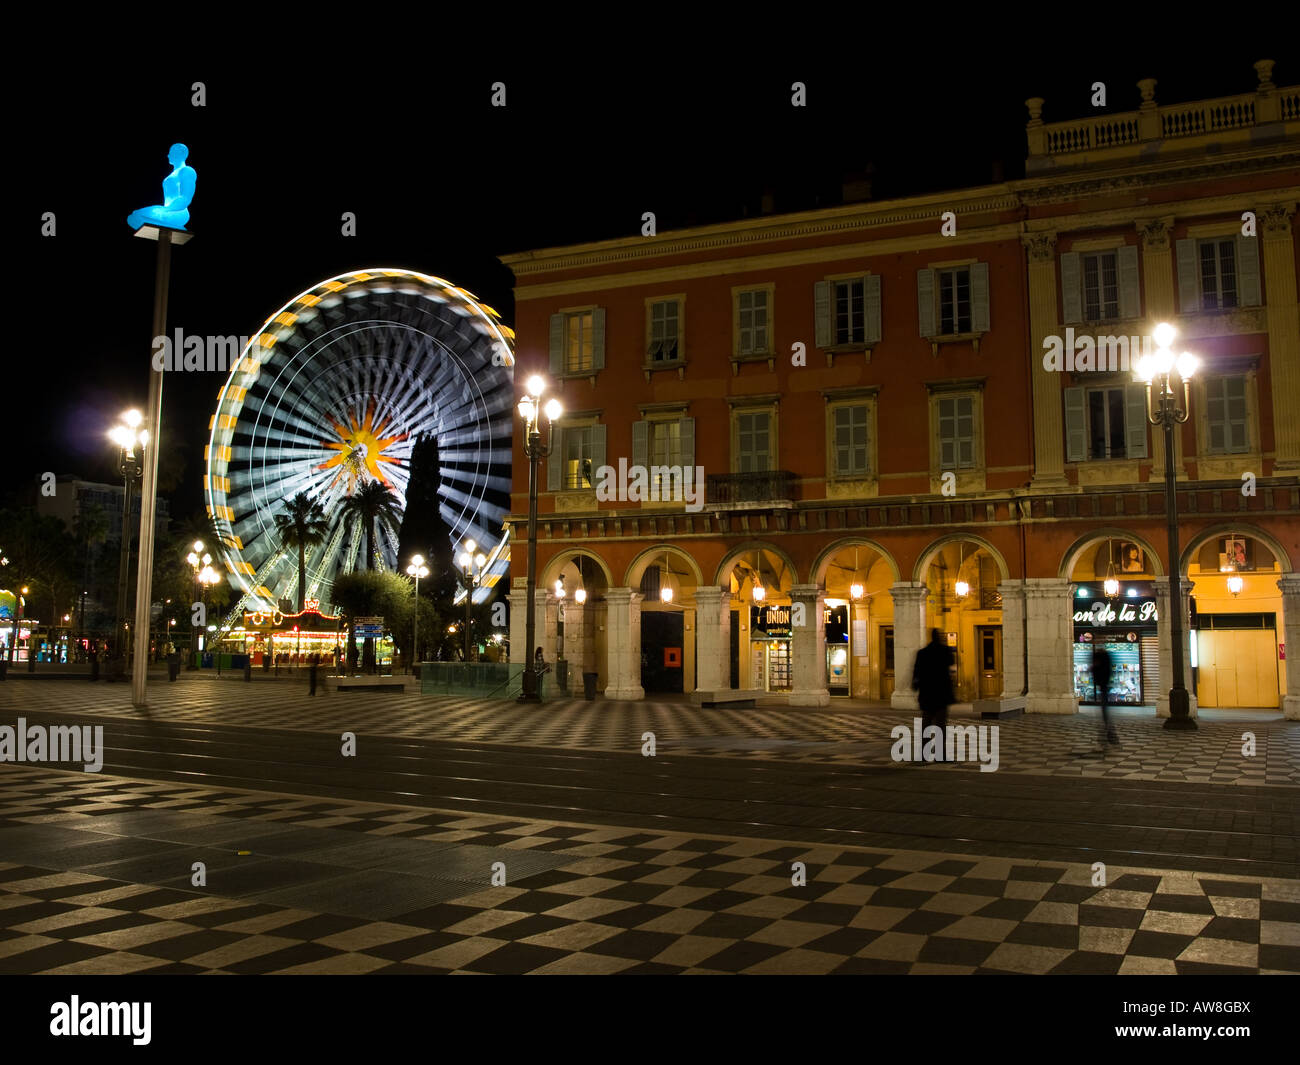 Colours light up Place Masséna in Nice, France at night. - Stock Image